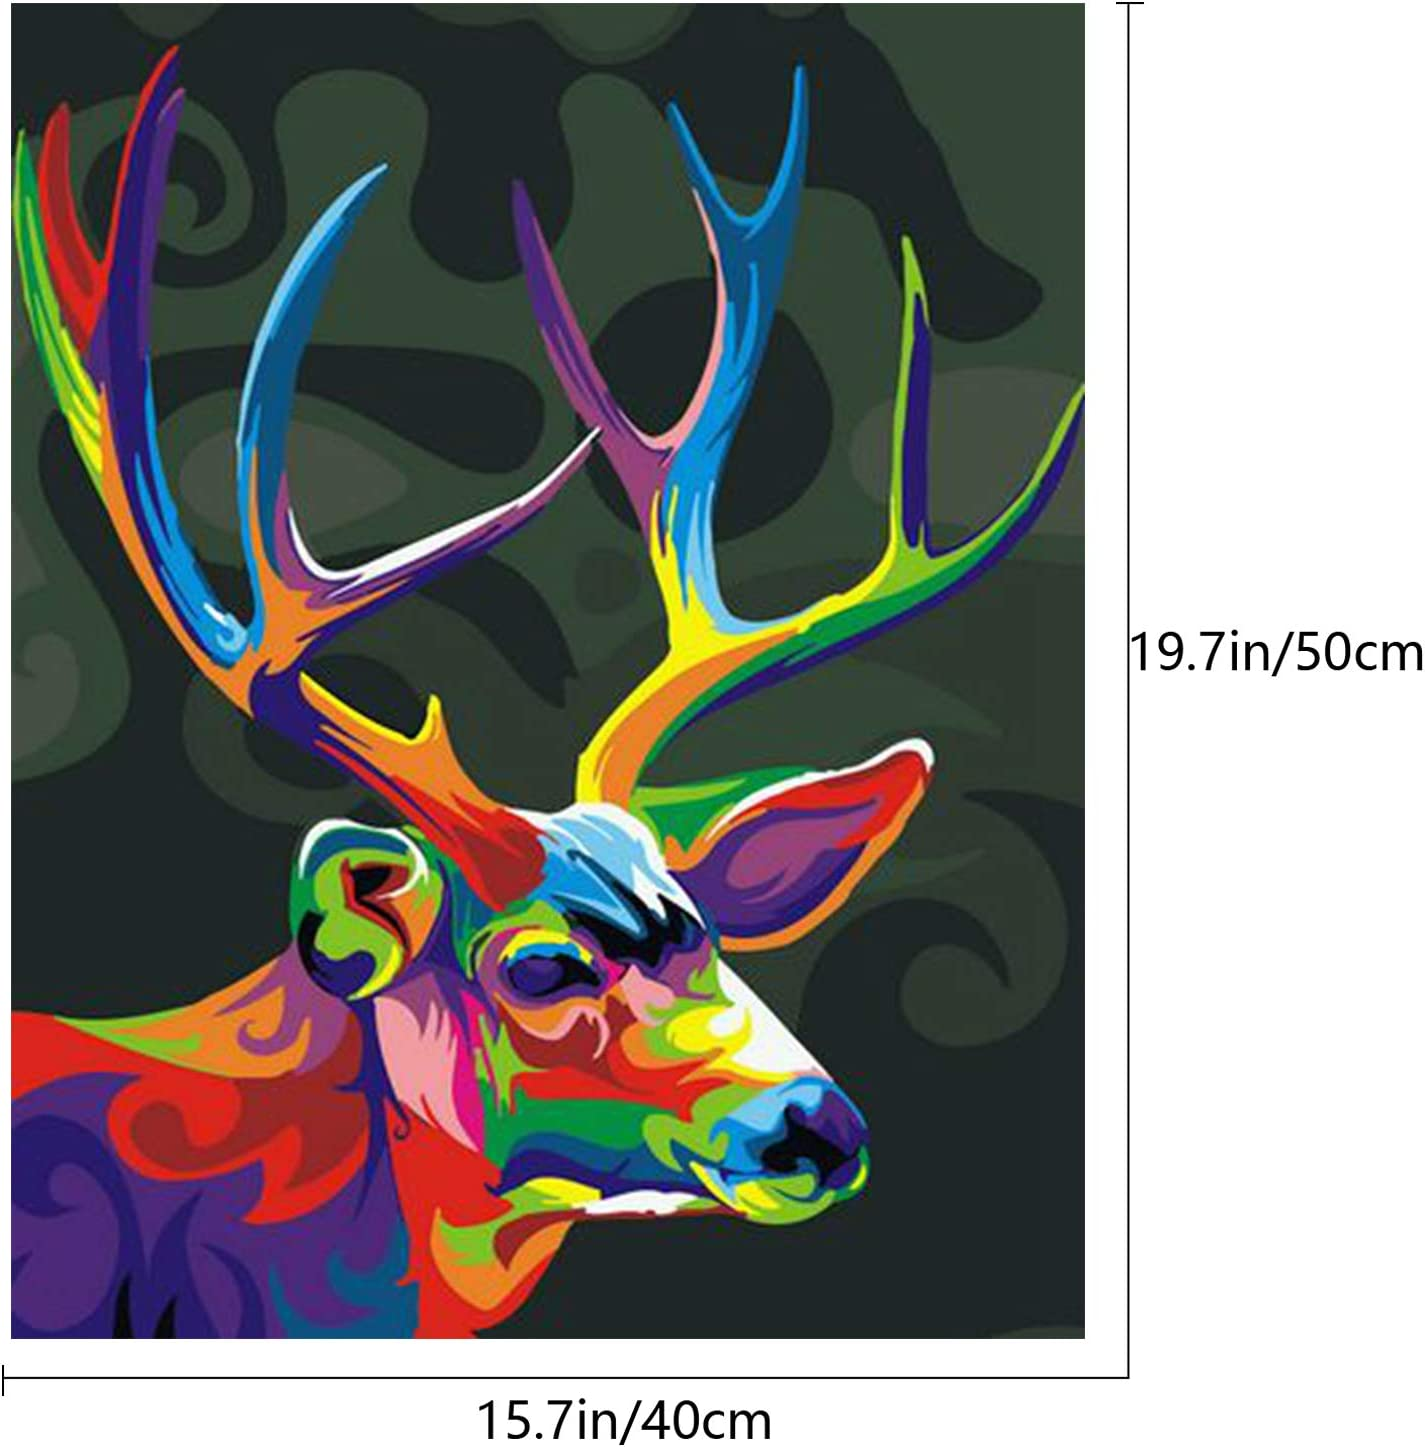 "SENWANG Paint by Number for Adult Oil Painting Canvas Kits 16/"" x 20/"" Paintwork with 26 Brushes Pigments Art Crafts for Home DIY Wall Decor Neon Deer"